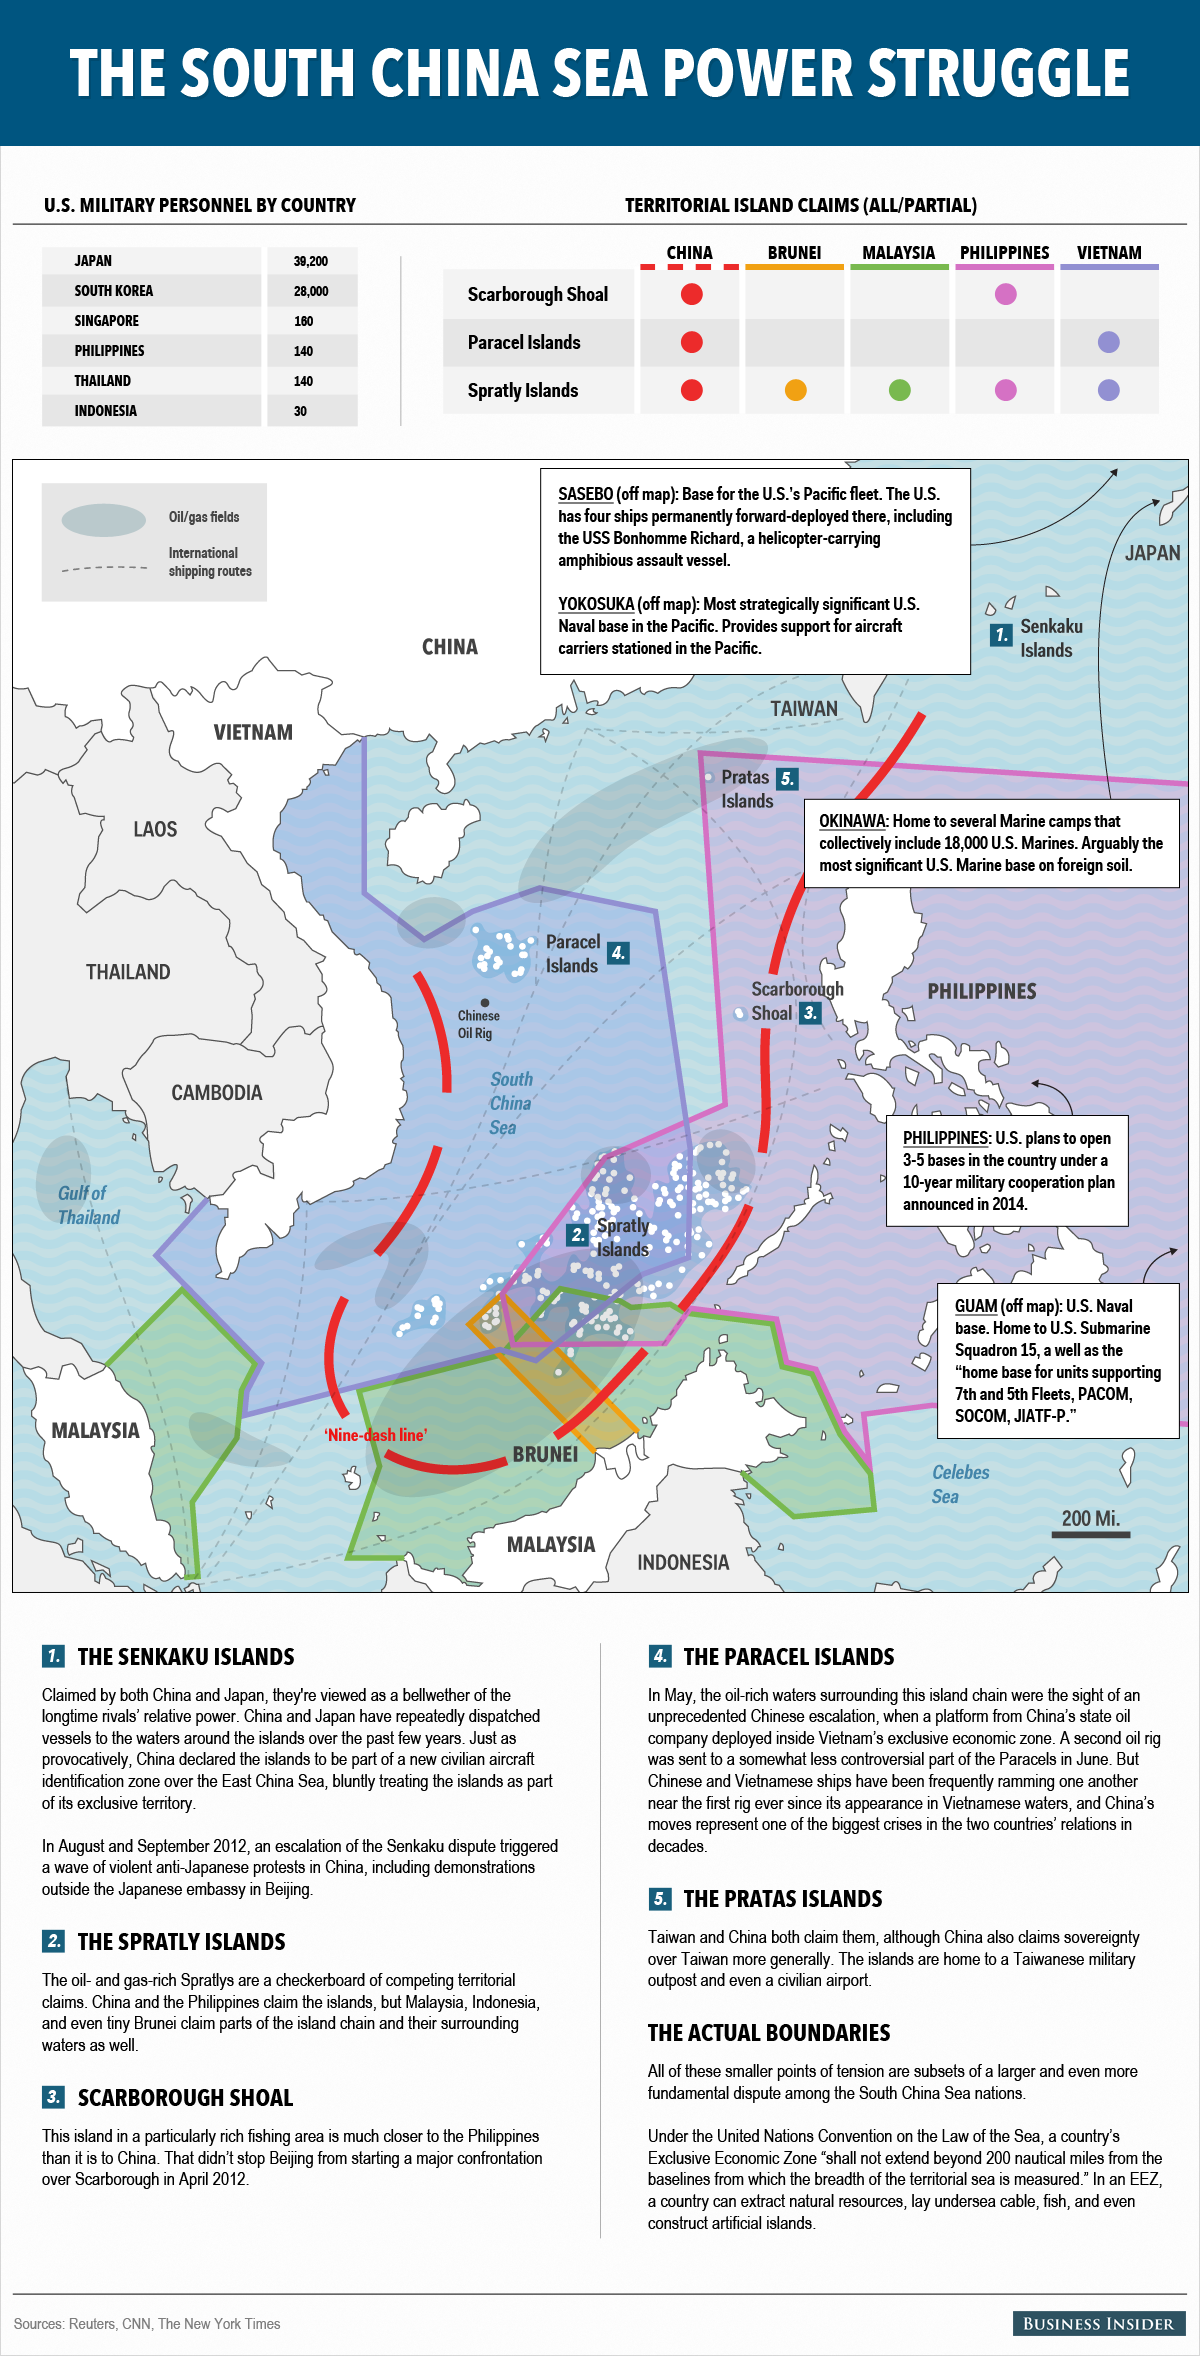 This map shows why the south china sea could lead to the next world war this map shows why the south china sea could lead to the next world war read more httpbusinessinsiderthe south china sea graphic 2014 7 gumiabroncs Image collections